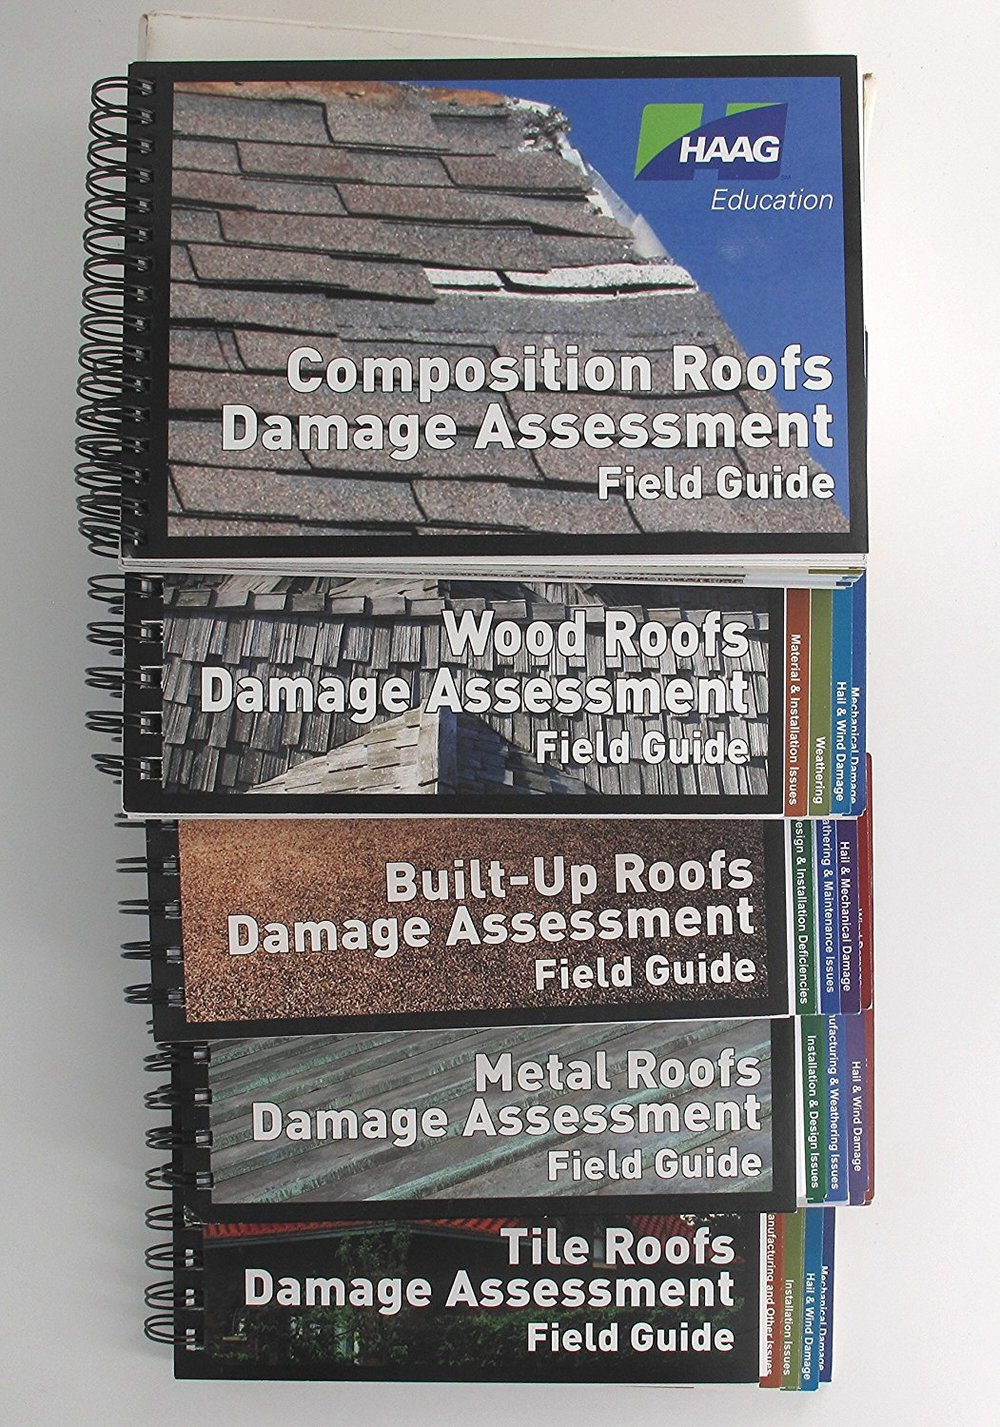 Haag Engineering Books - The number of times I've shown an insured or a roofer a photo from one of my Haag books can't be counted. These are the GOLD STANDARD of roof damage evaluation. I know of no other resource that comes close to matching these books in quality.Plus, they're heavily constructed so they'll take YEARS of abuse on the road.Simply a must-have for the working cat adjuster.